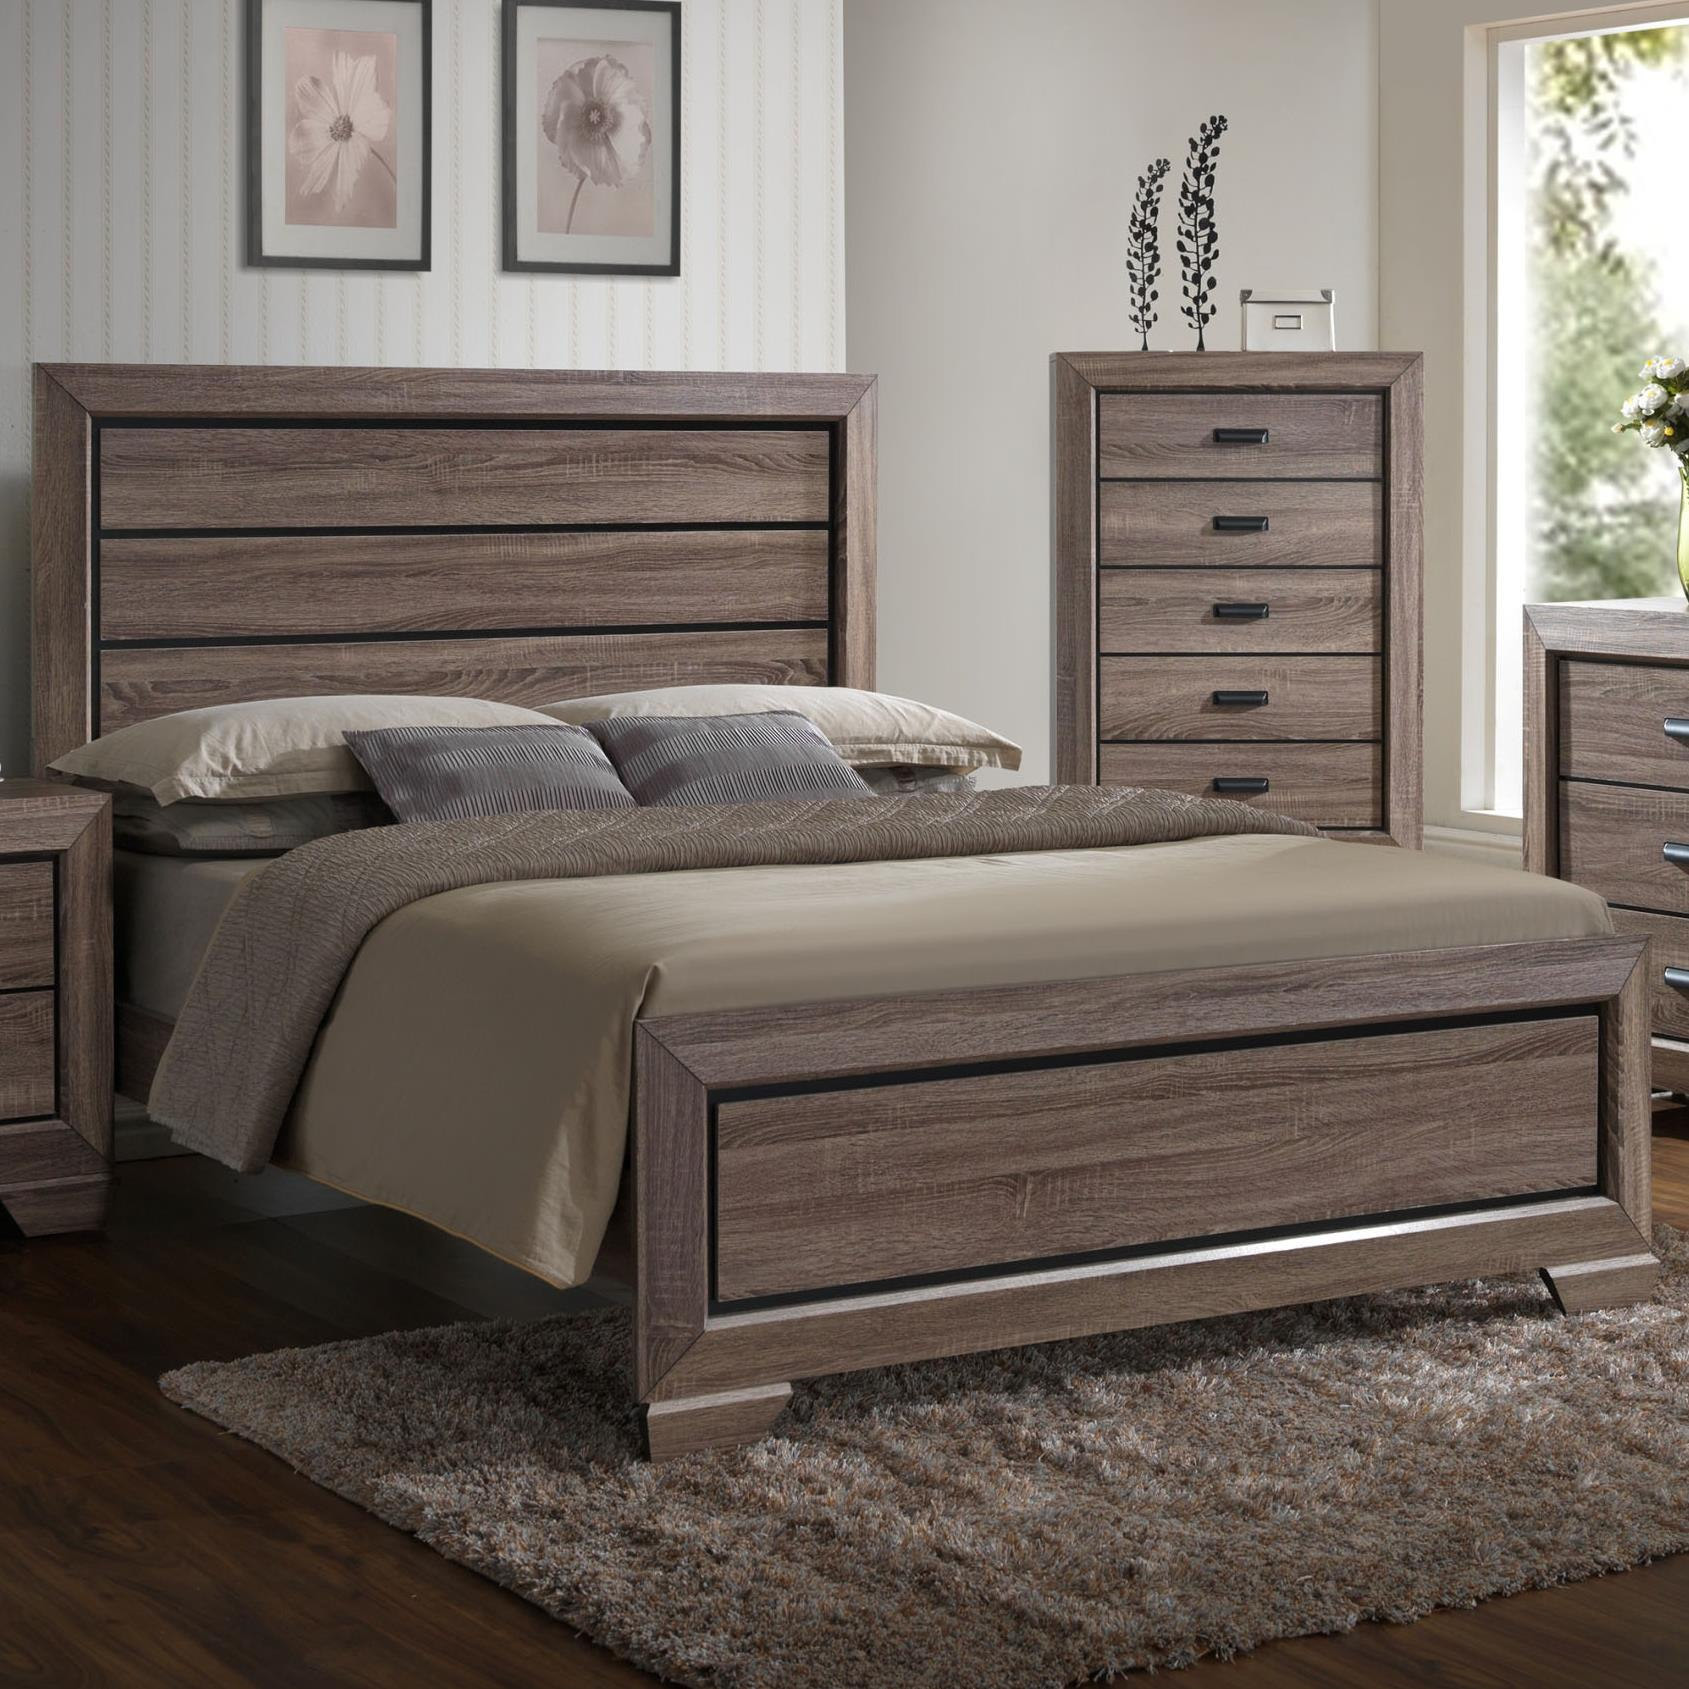 Farrow Queen Headboard and Footboard Bed by Crown Mark at Northeast Factory Direct